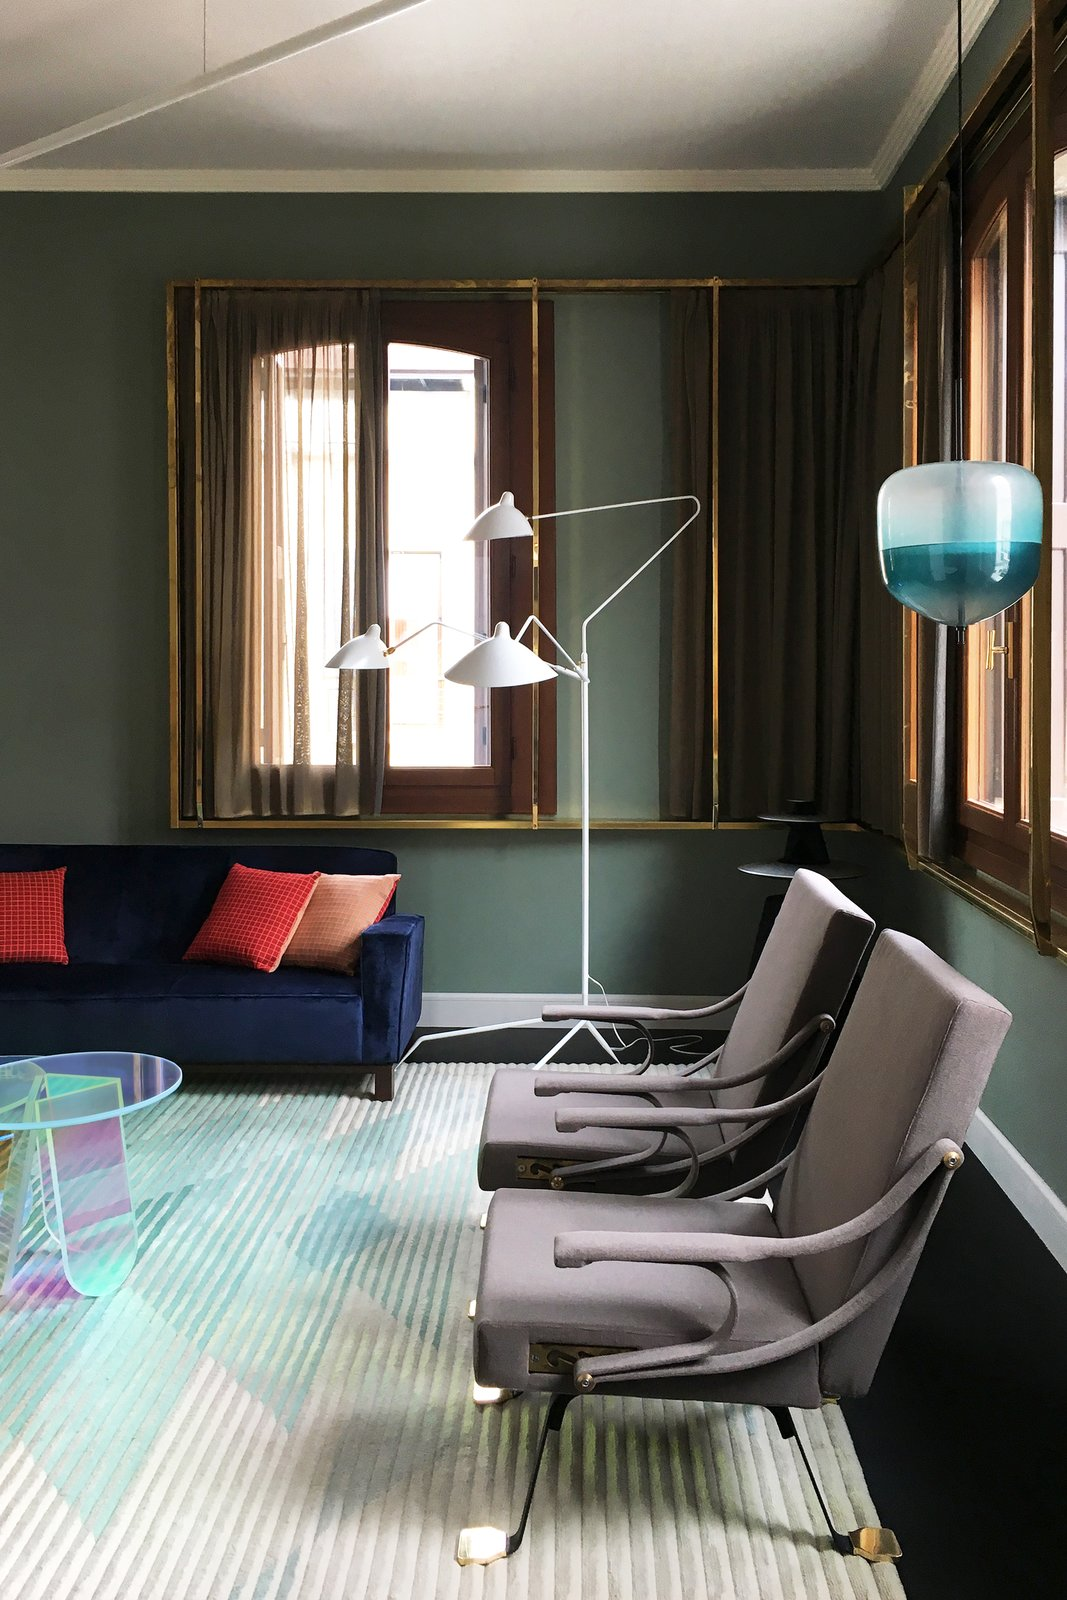 Living Room, Chair, Sofa, Lamps, Floor Lighting, Pendant Lighting, Coffee Tables, Rug Floor, and Carpet Floor This iconic floor lamp from Serge Mouille alongside the Flow S4 Pendant, designed by Nao Tamura, inspired by the reflections of the Venetian cityscape, are both stylish standouts.  Best Photos from This Venetian Apartment Is Bursting With Incredible European Furnishings